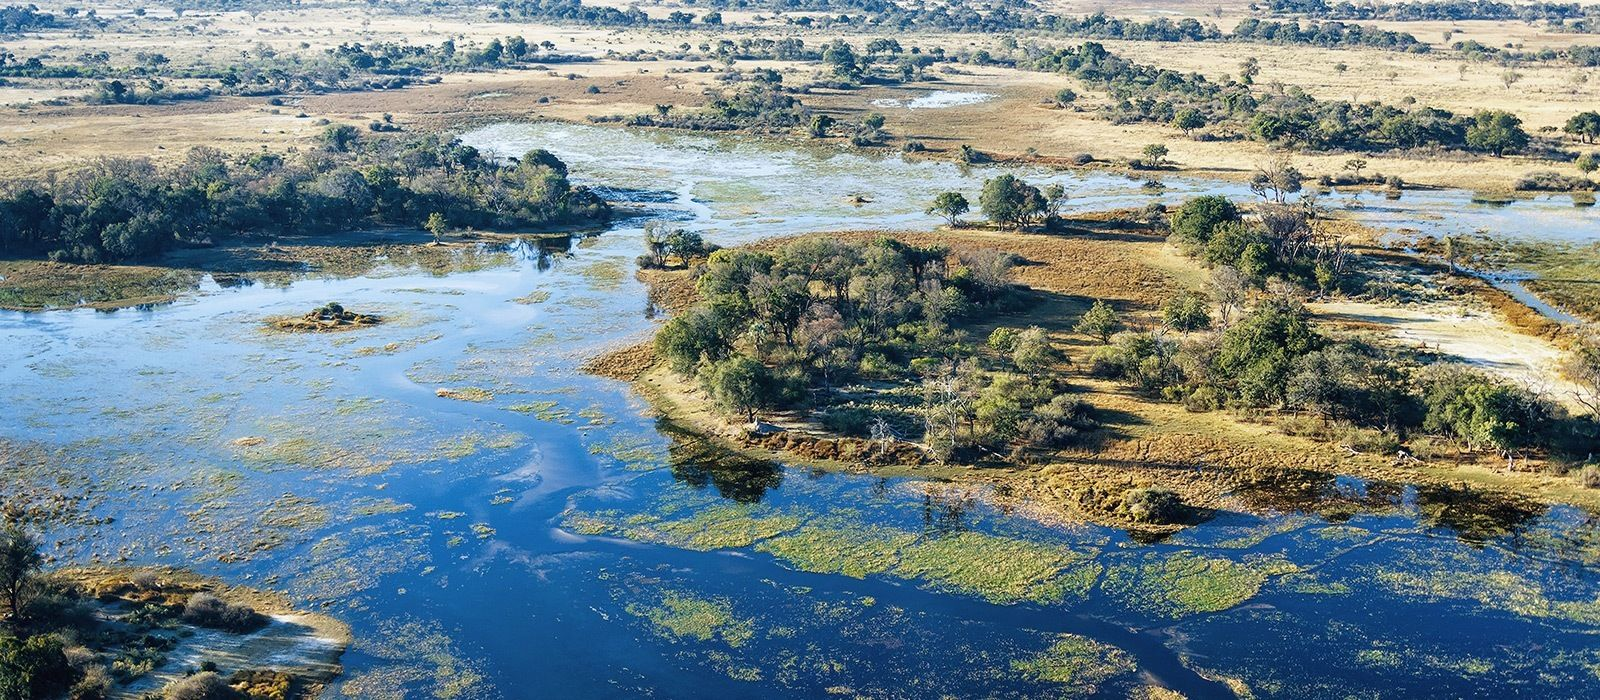 Wings over Victoria Falls and Botswana Tour Trip 3